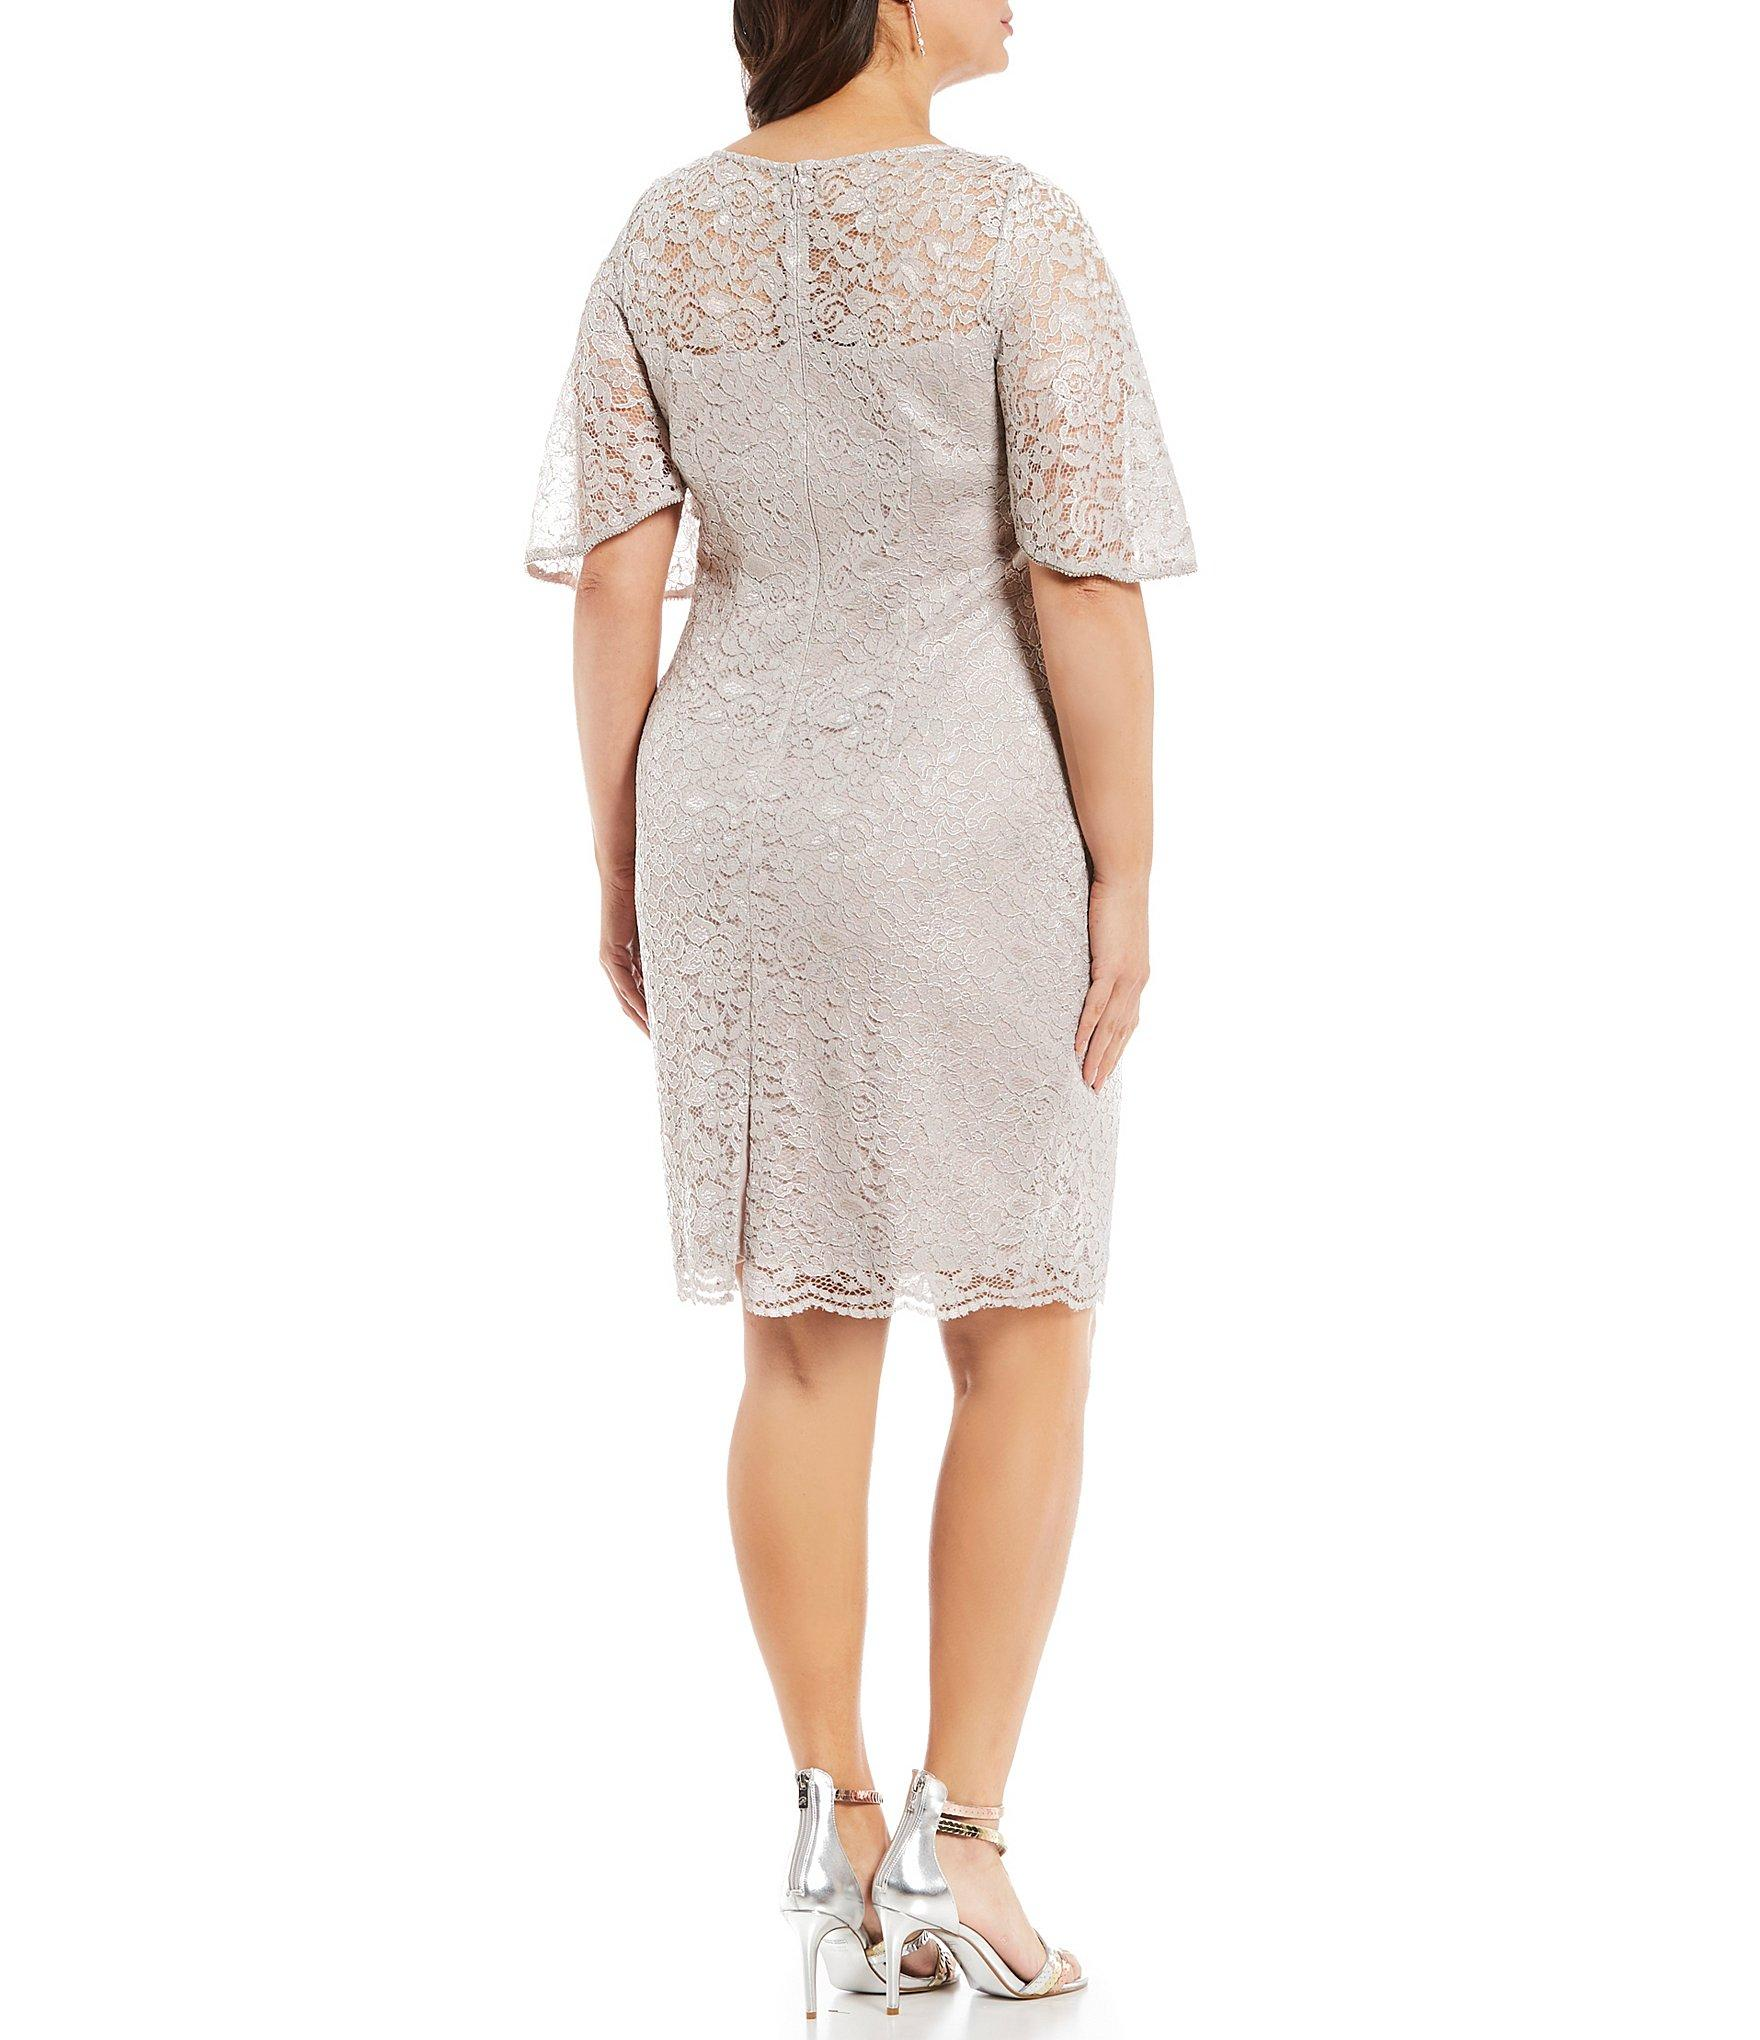 dde01a972a4 Adrianna Papell - Multicolor Plus Size Lace Sheath Dress - Lyst. View  fullscreen